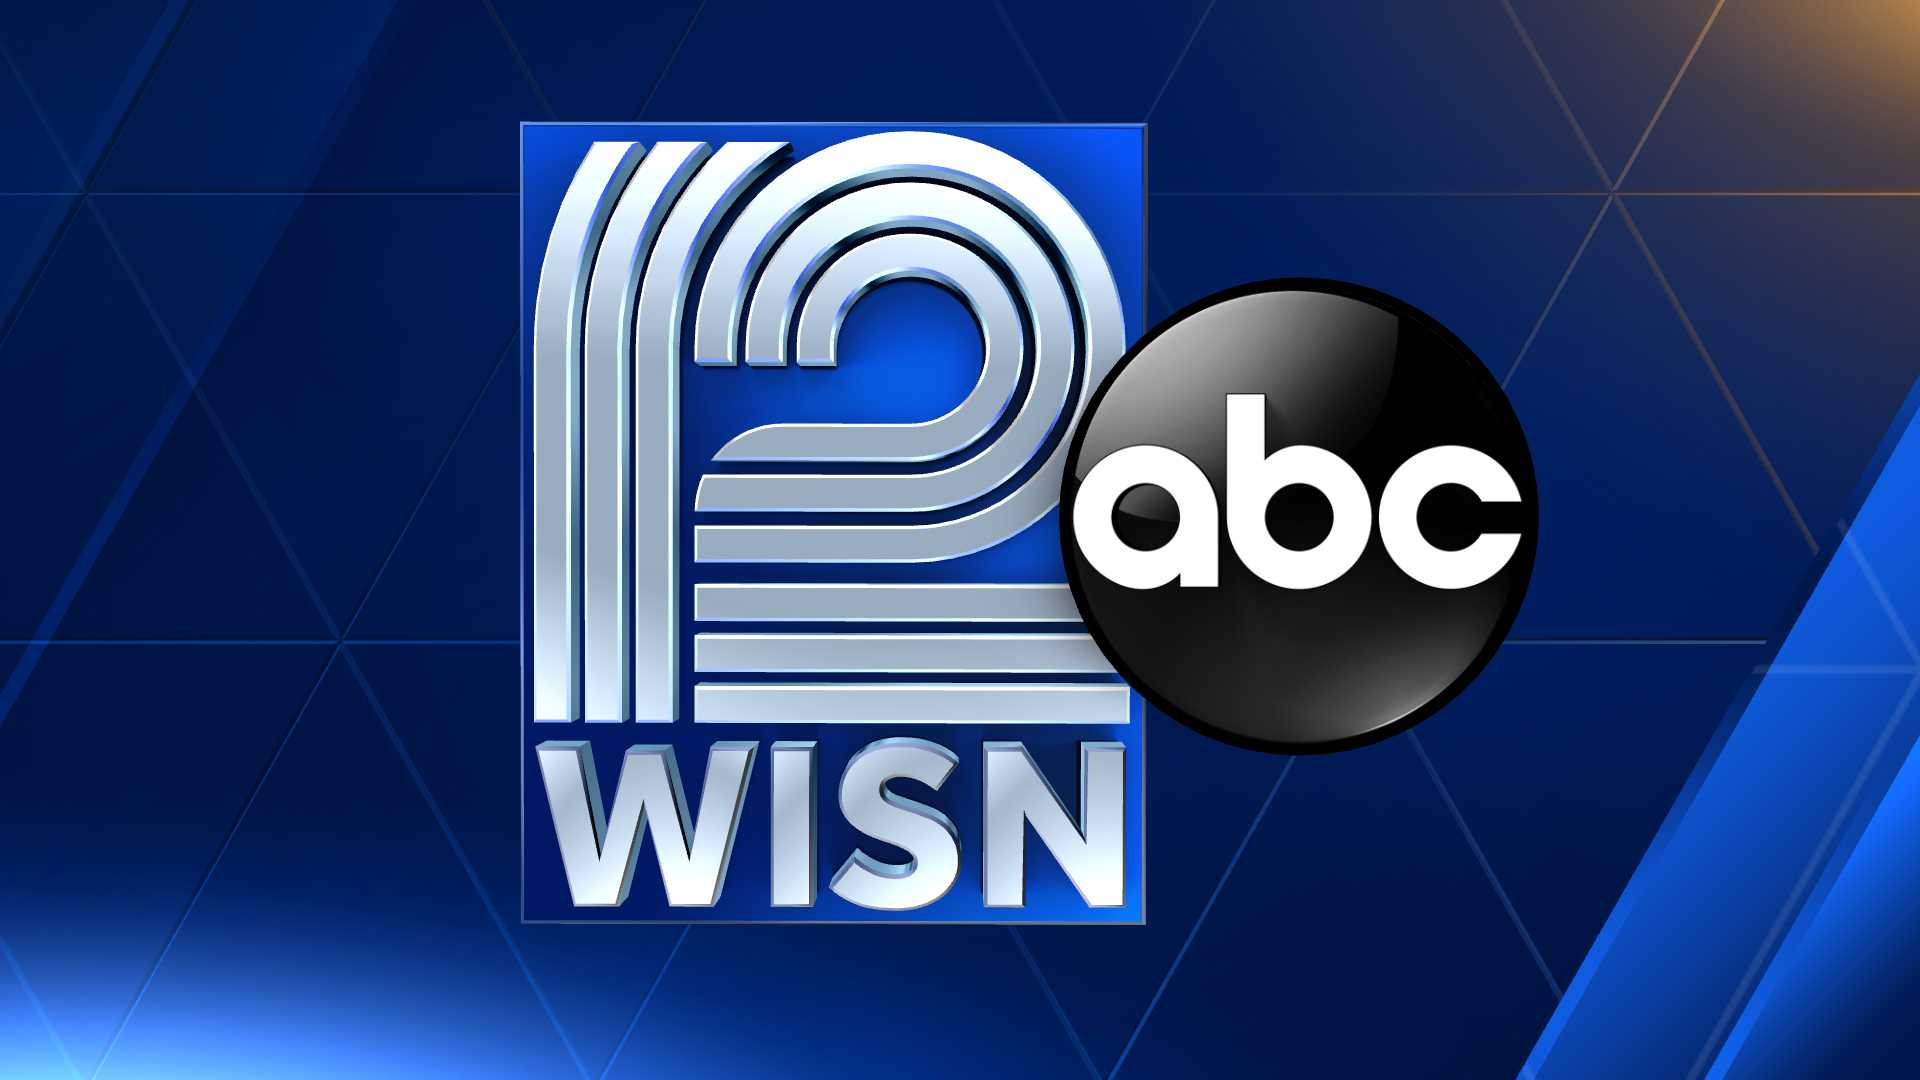 WISN 12 will go dark again for some viewers later today